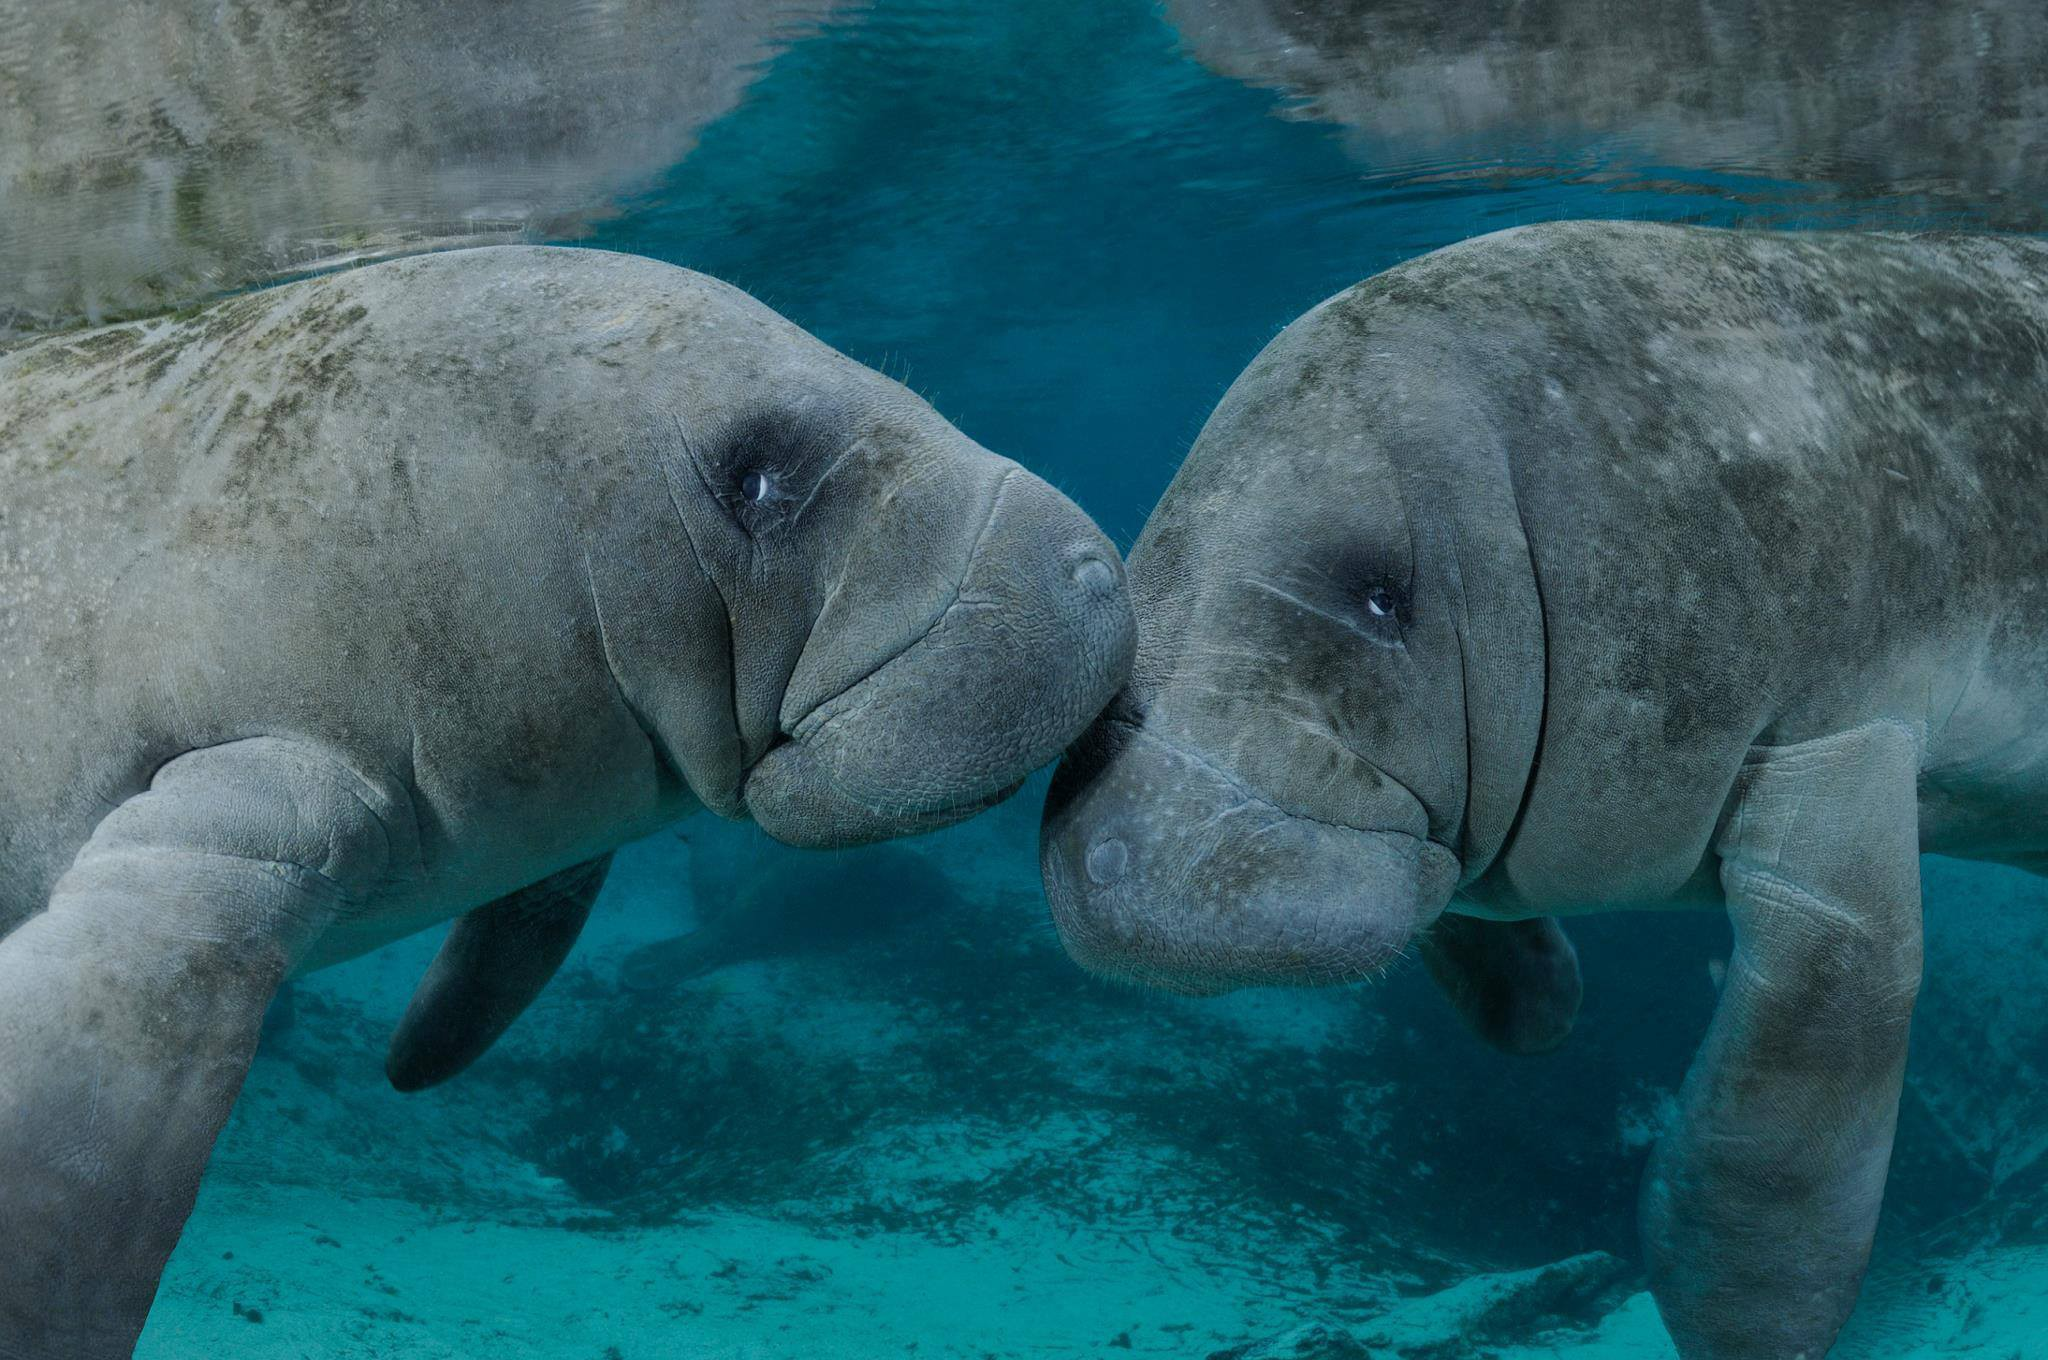 Two manatees touches noses underwater